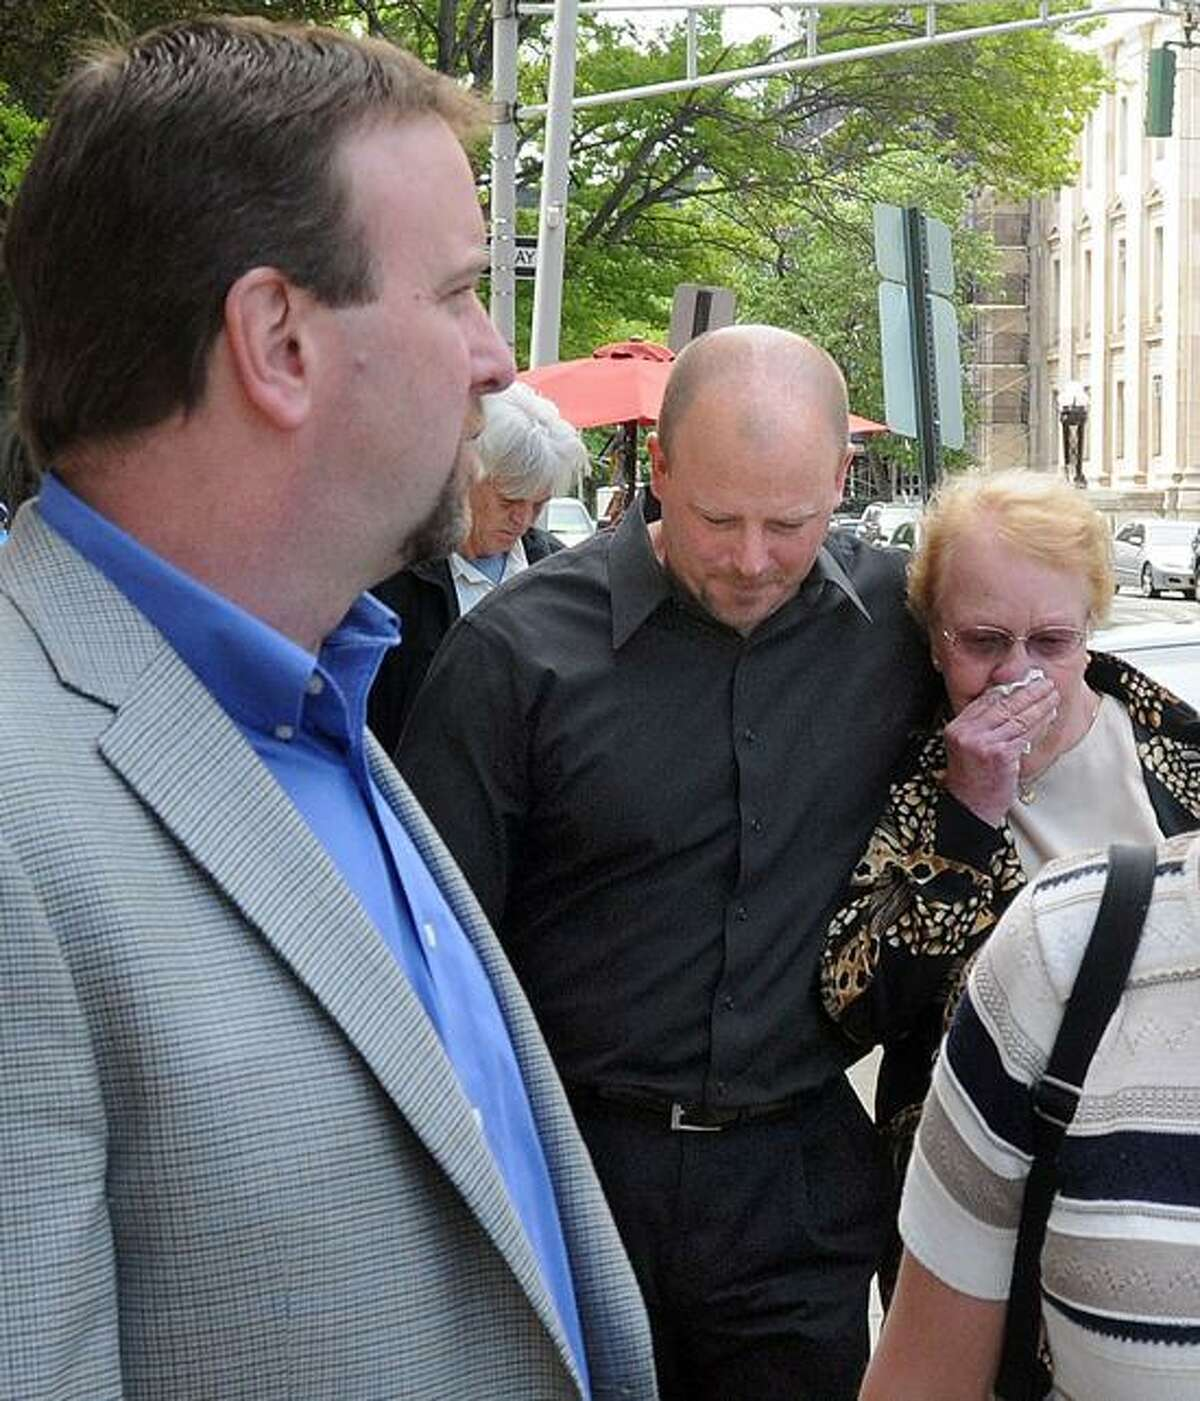 Robert Hall Jr. left, his brother Donald center, and their aunt Joan leave New Haven Superior Court after the sentencing of Mary Ames in the murder of Christopher Hall, the men's brother. Mara Lavitt/New Haven Register mlavitt@newhavenregister.com5/17/13